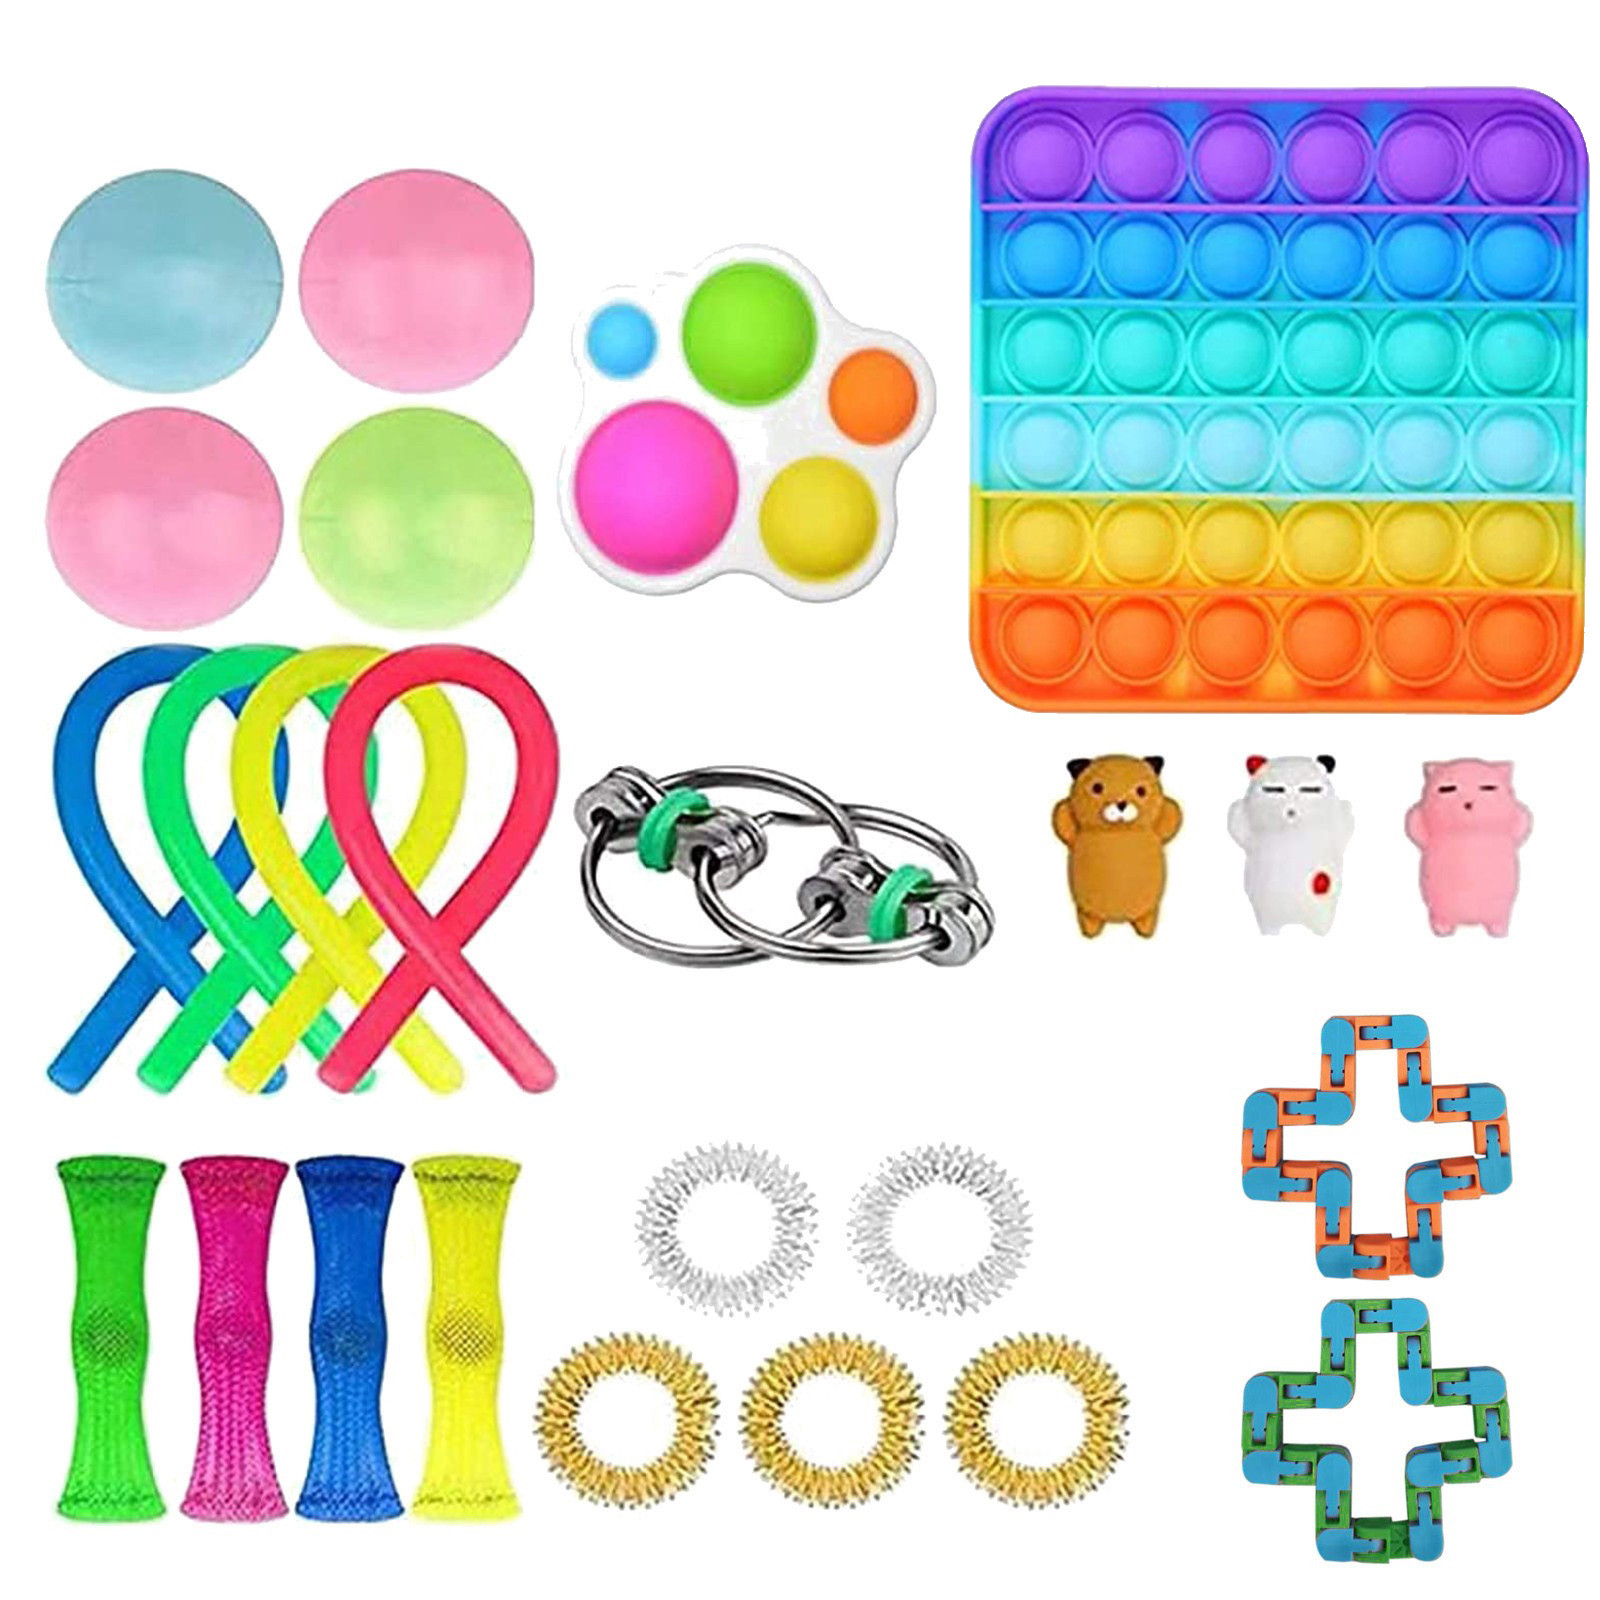 Fidget-Toys Anti-Stress-Set Sensory Gift-Pack Strings Relief Squishy Adults Kids Stretchy img2